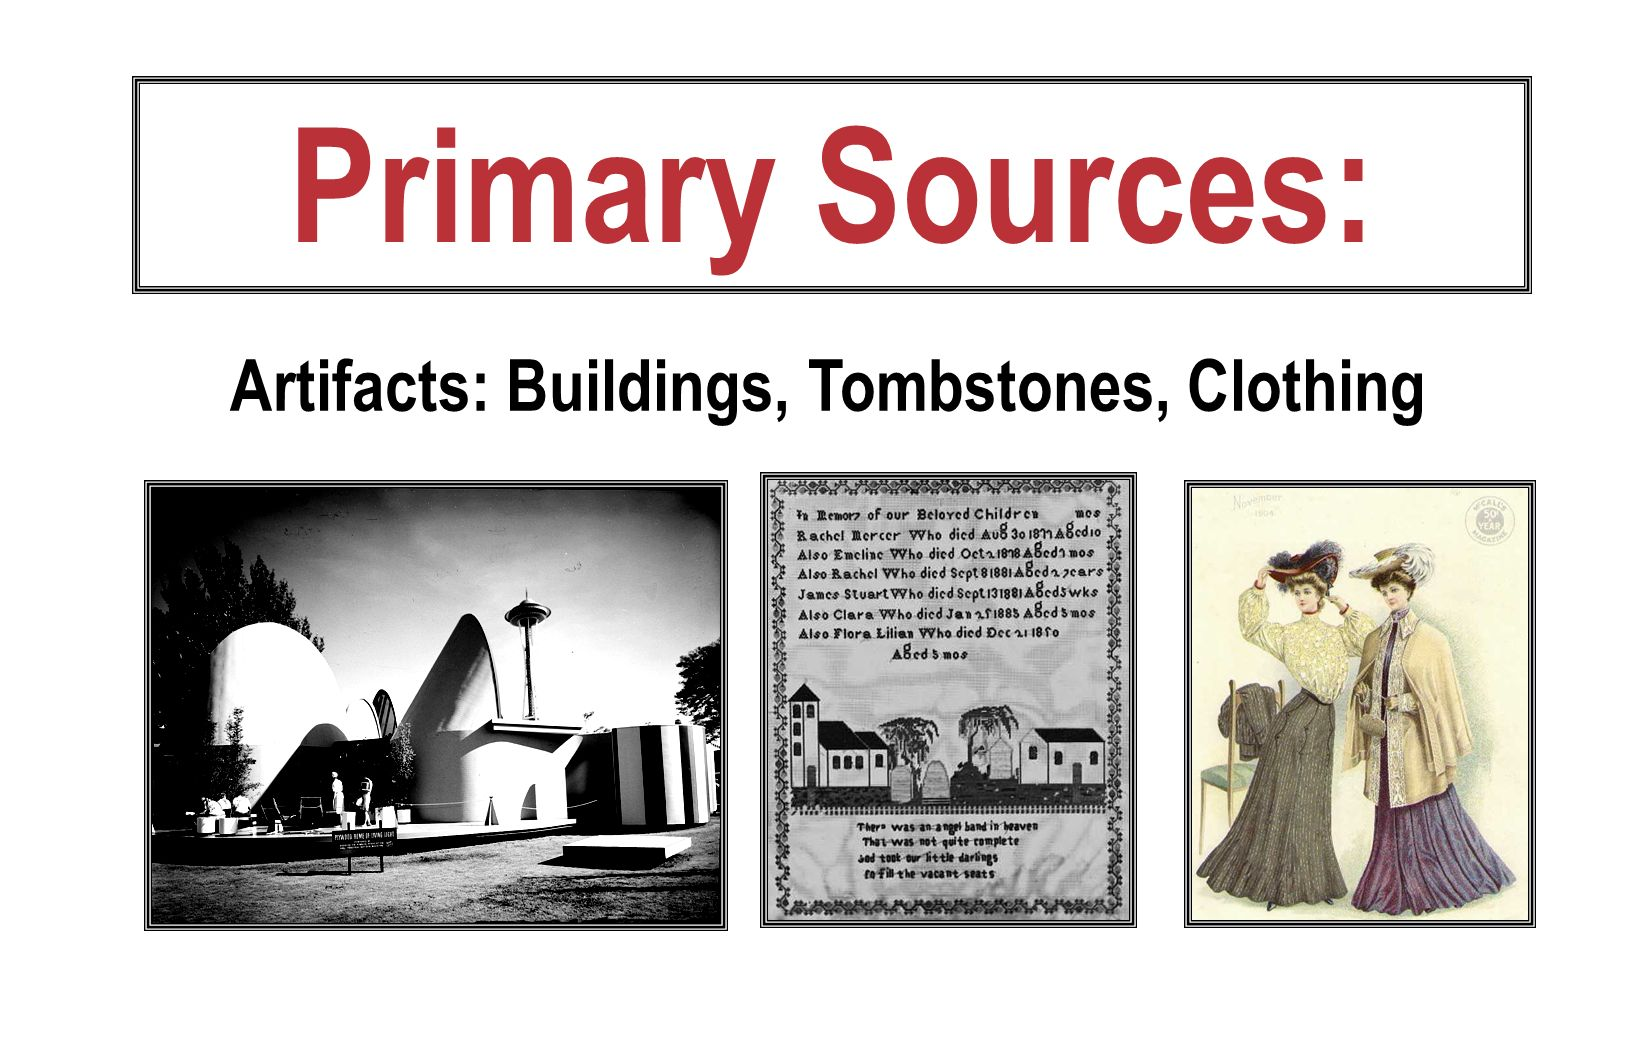 Artifacts: Buildings, Tombstones, Clothing